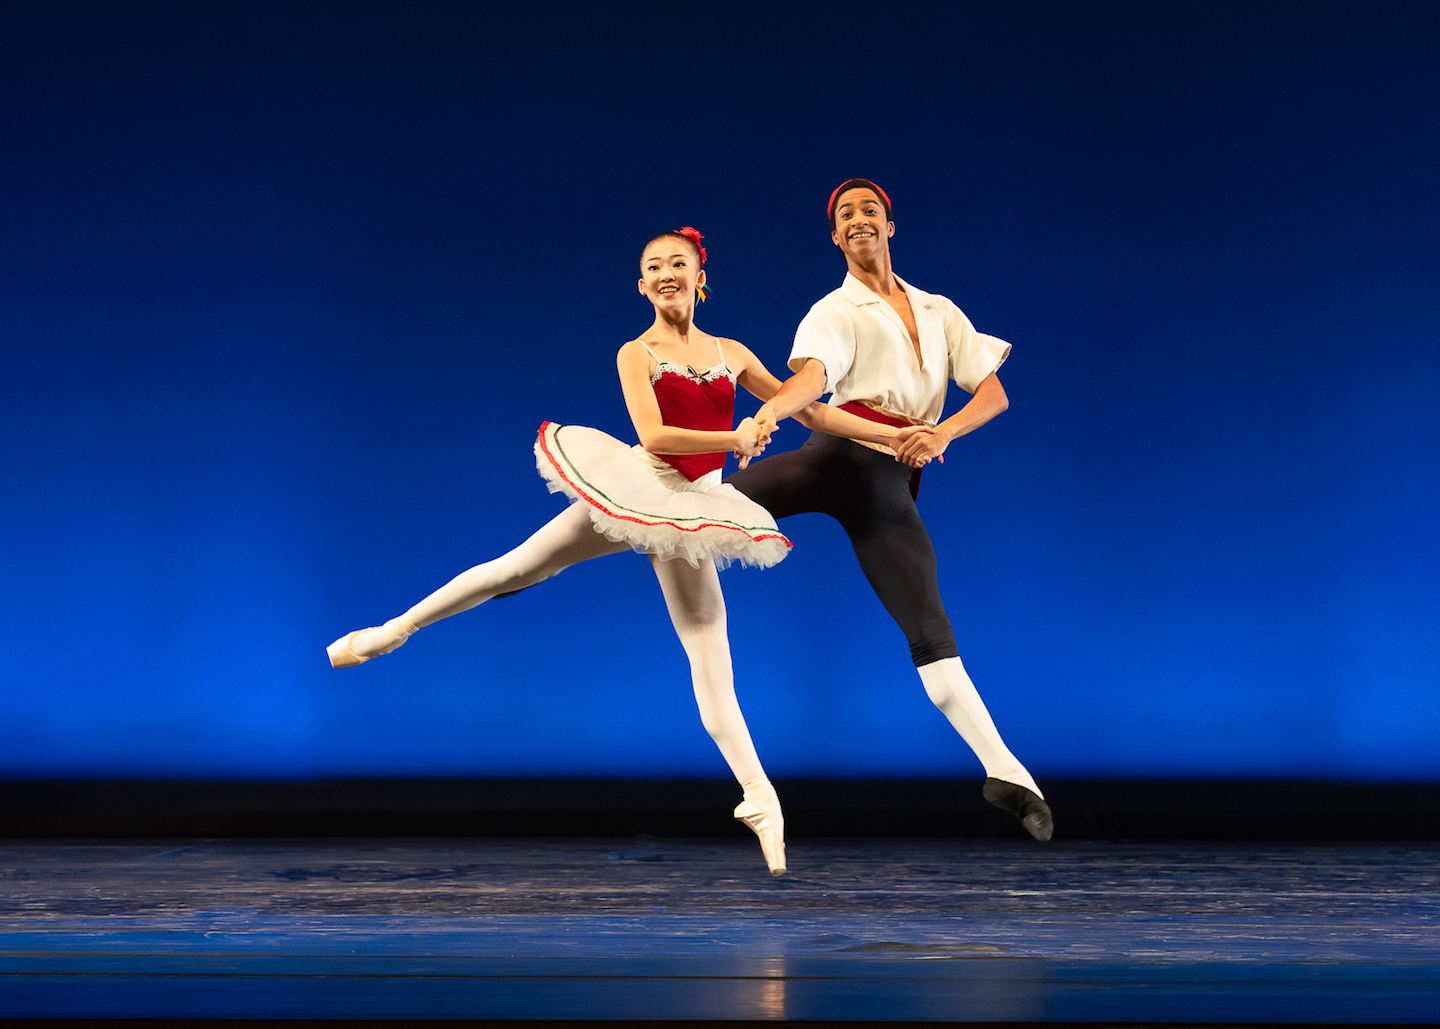 Kanon Kimura and Melvin Lawovi in George Balanchine's <i>Tarantella</i>. © The George Balanchine Trust. Photo: Kyle Froman.